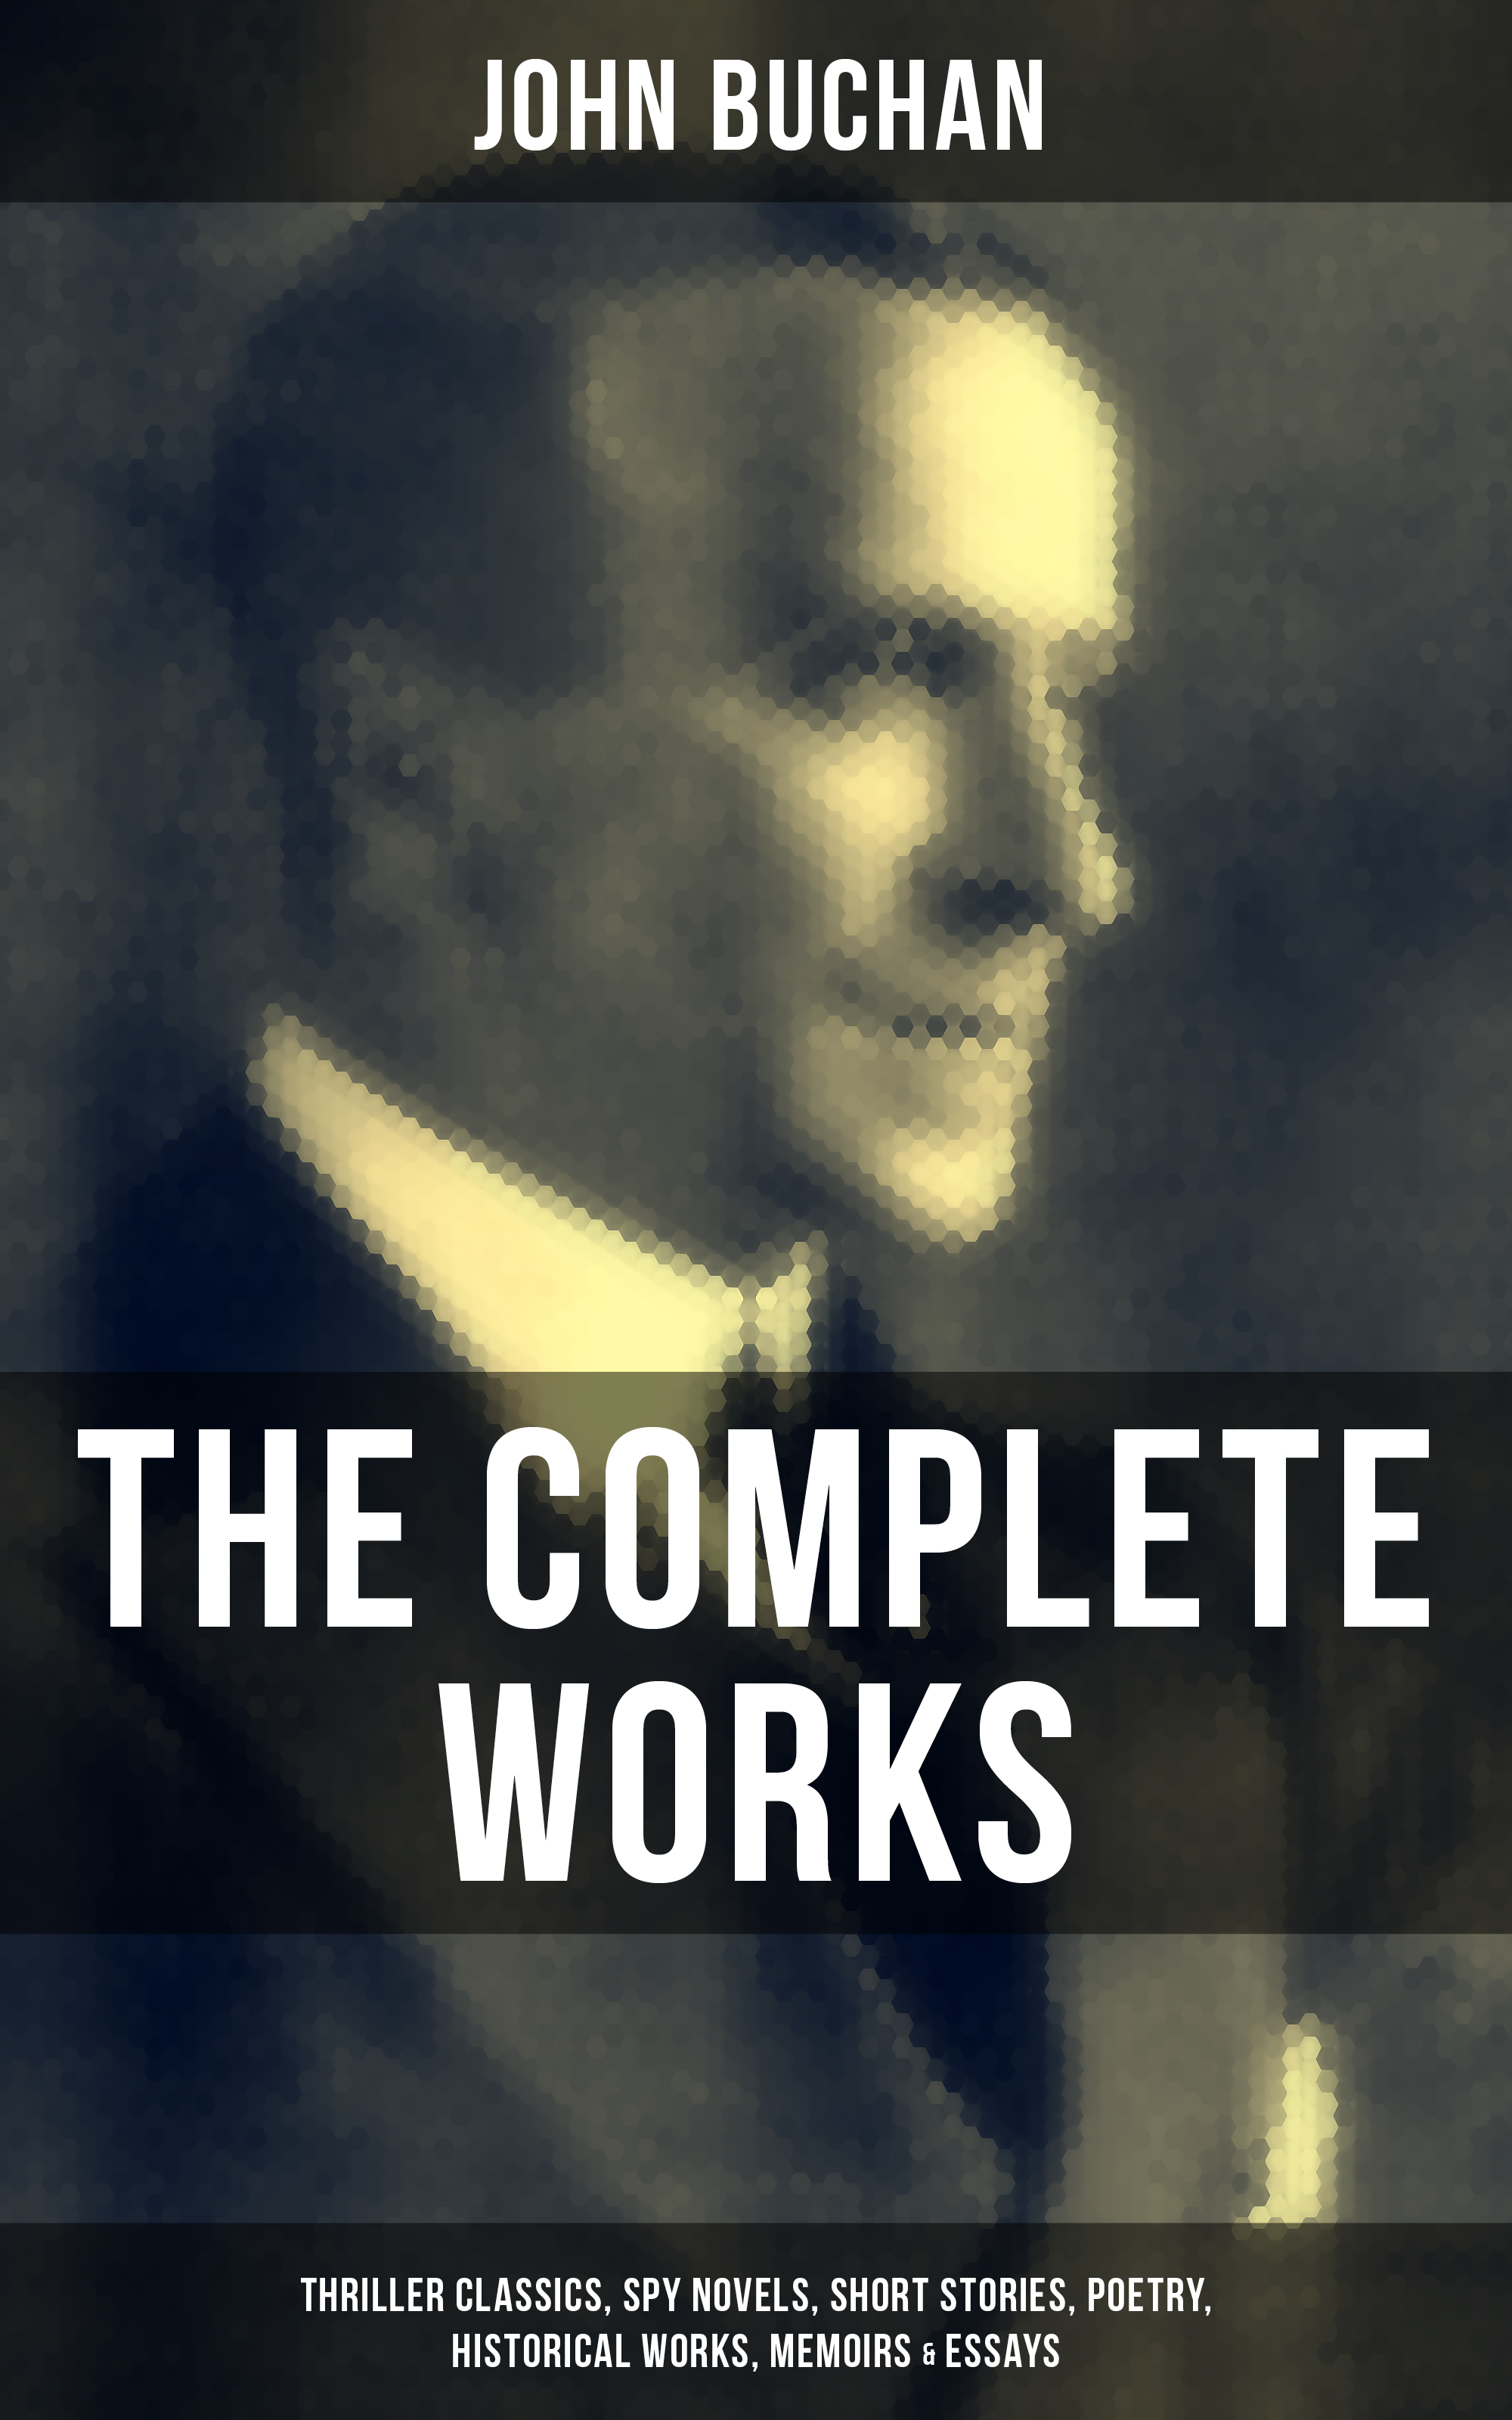 Buchan John The Complete Works of John Buchan: Thriller Classics, Spy Novels, Short Stories, Poetry, Historical Works, Memoirs & Essays readon classics the complete works of nathaniel hawthorne novels short stories poetry essays letters and memoirs illustrated edition the scarlet letter with its romance tanglewood tales birthmark ghost